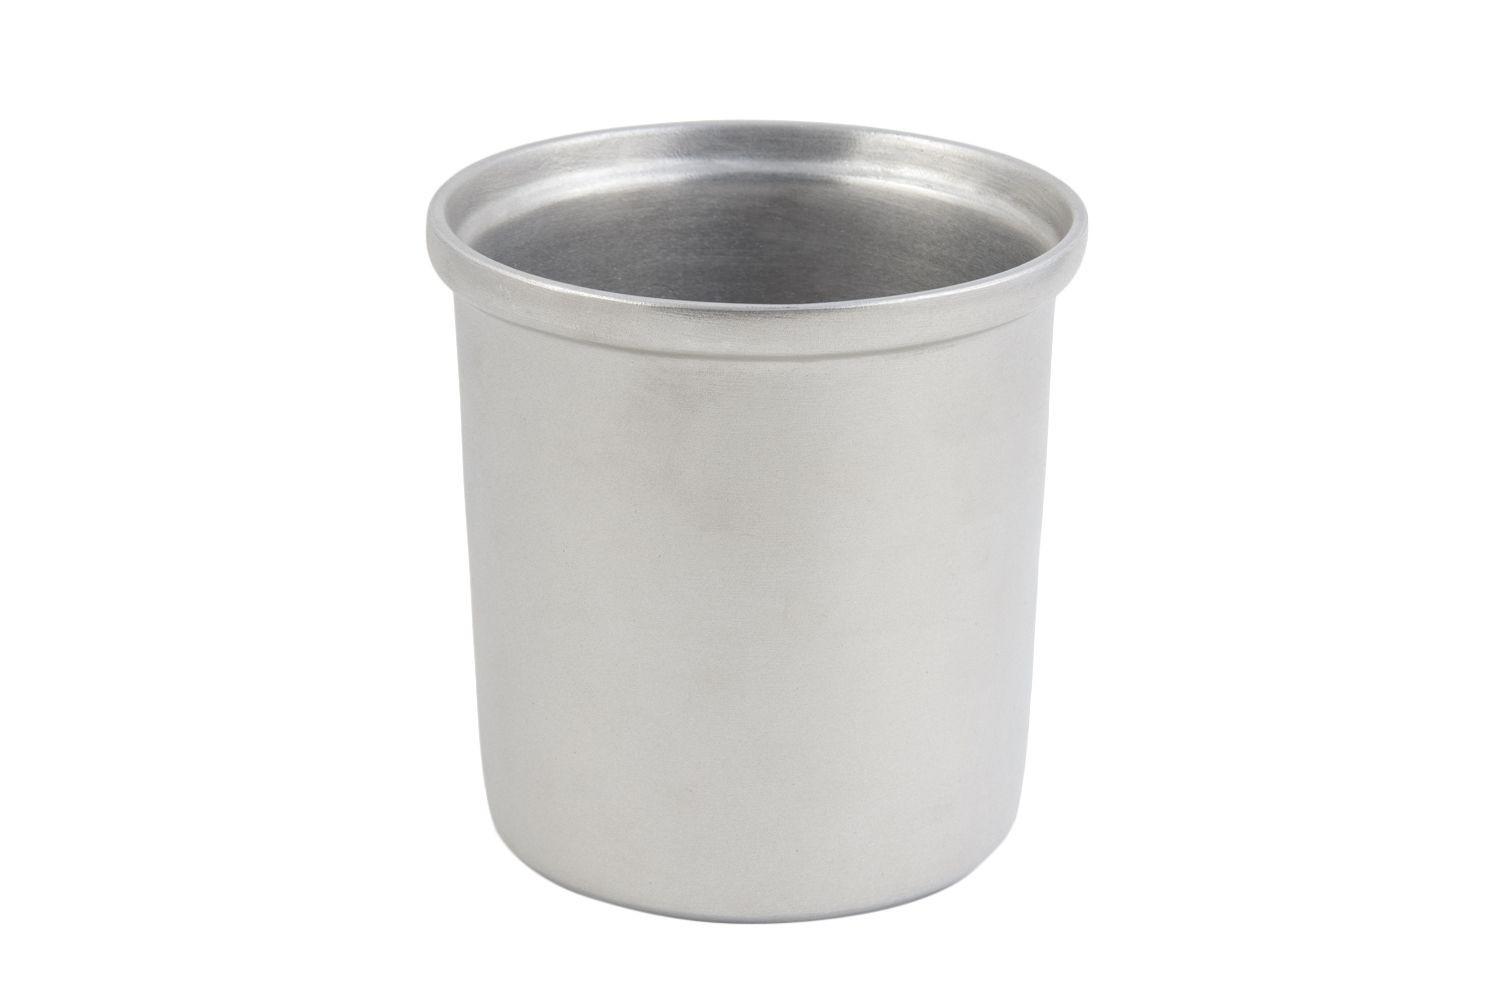 Bon Chef 9203P Dressing Container, Pewter Glo 2 Qt., 20 oz., Set of 2